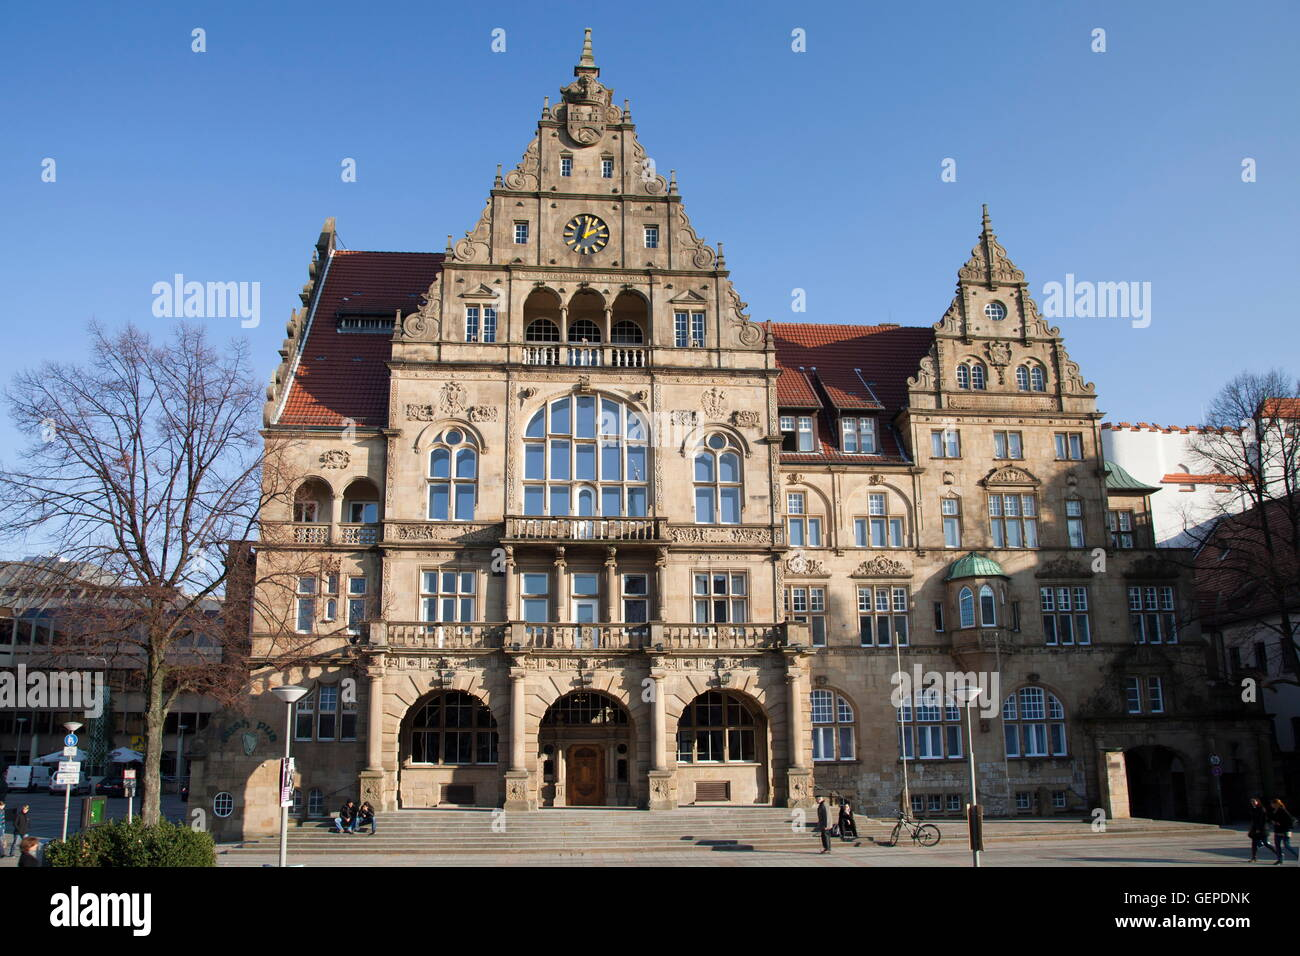 bielefeld germany town stockfotos bielefeld germany town. Black Bedroom Furniture Sets. Home Design Ideas